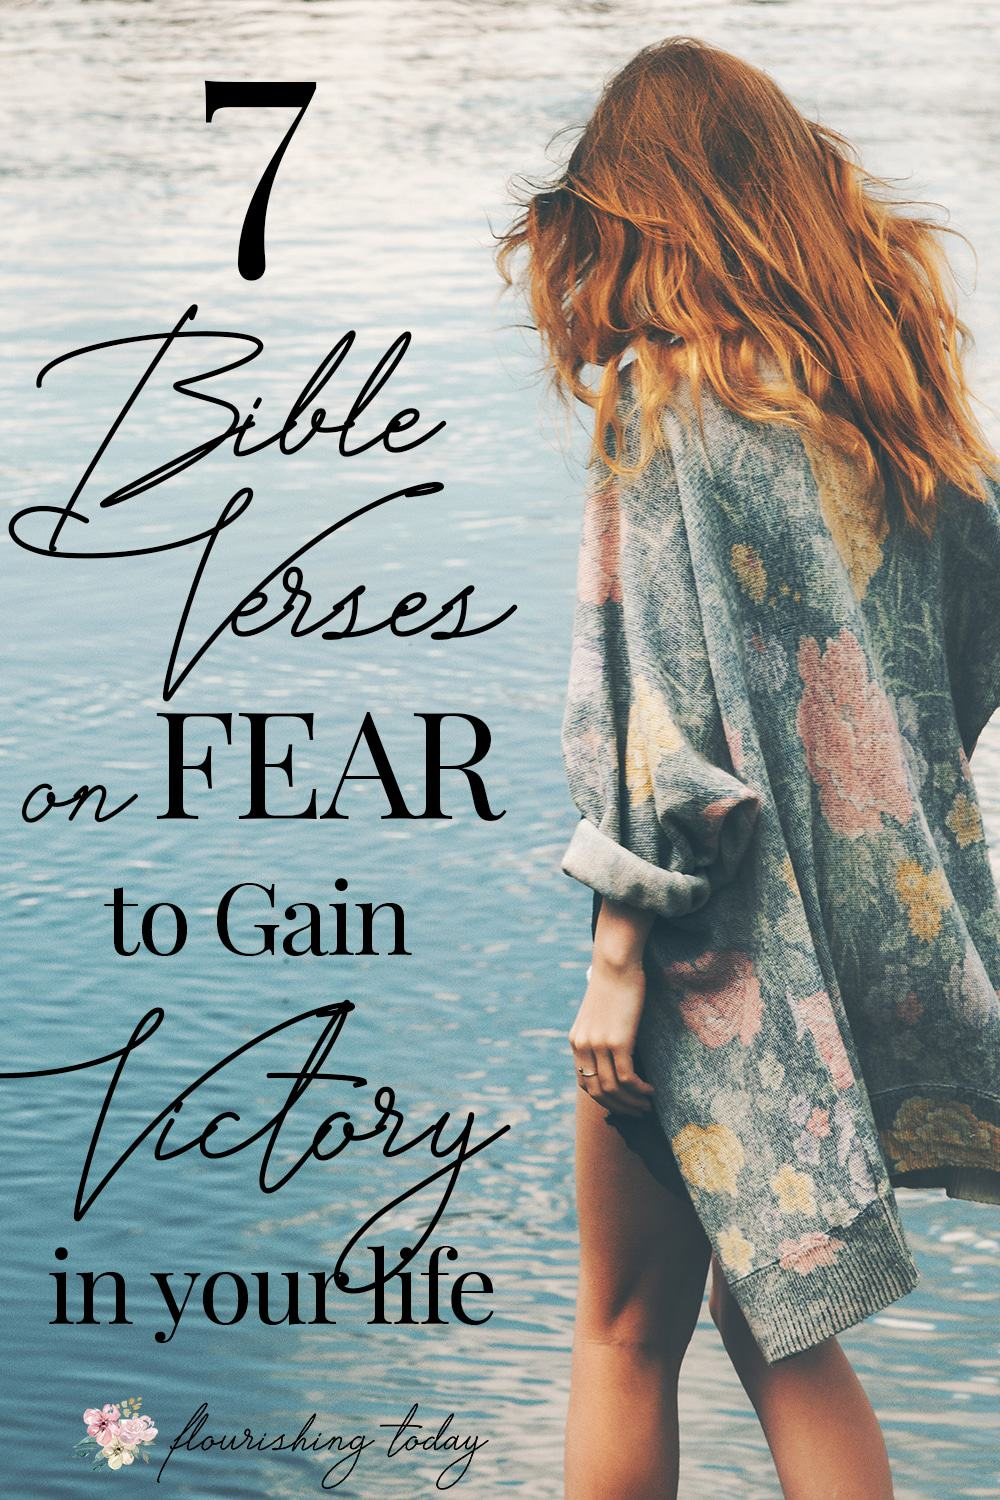 Is fear stealing your joy? Are you ready to gain victory over it? Here are 7 bible verses on fear to claim to win the battle against fear in your life! #overcomefear #nofear #bibleversesfear #battlingfear #fearless #promisesofGod